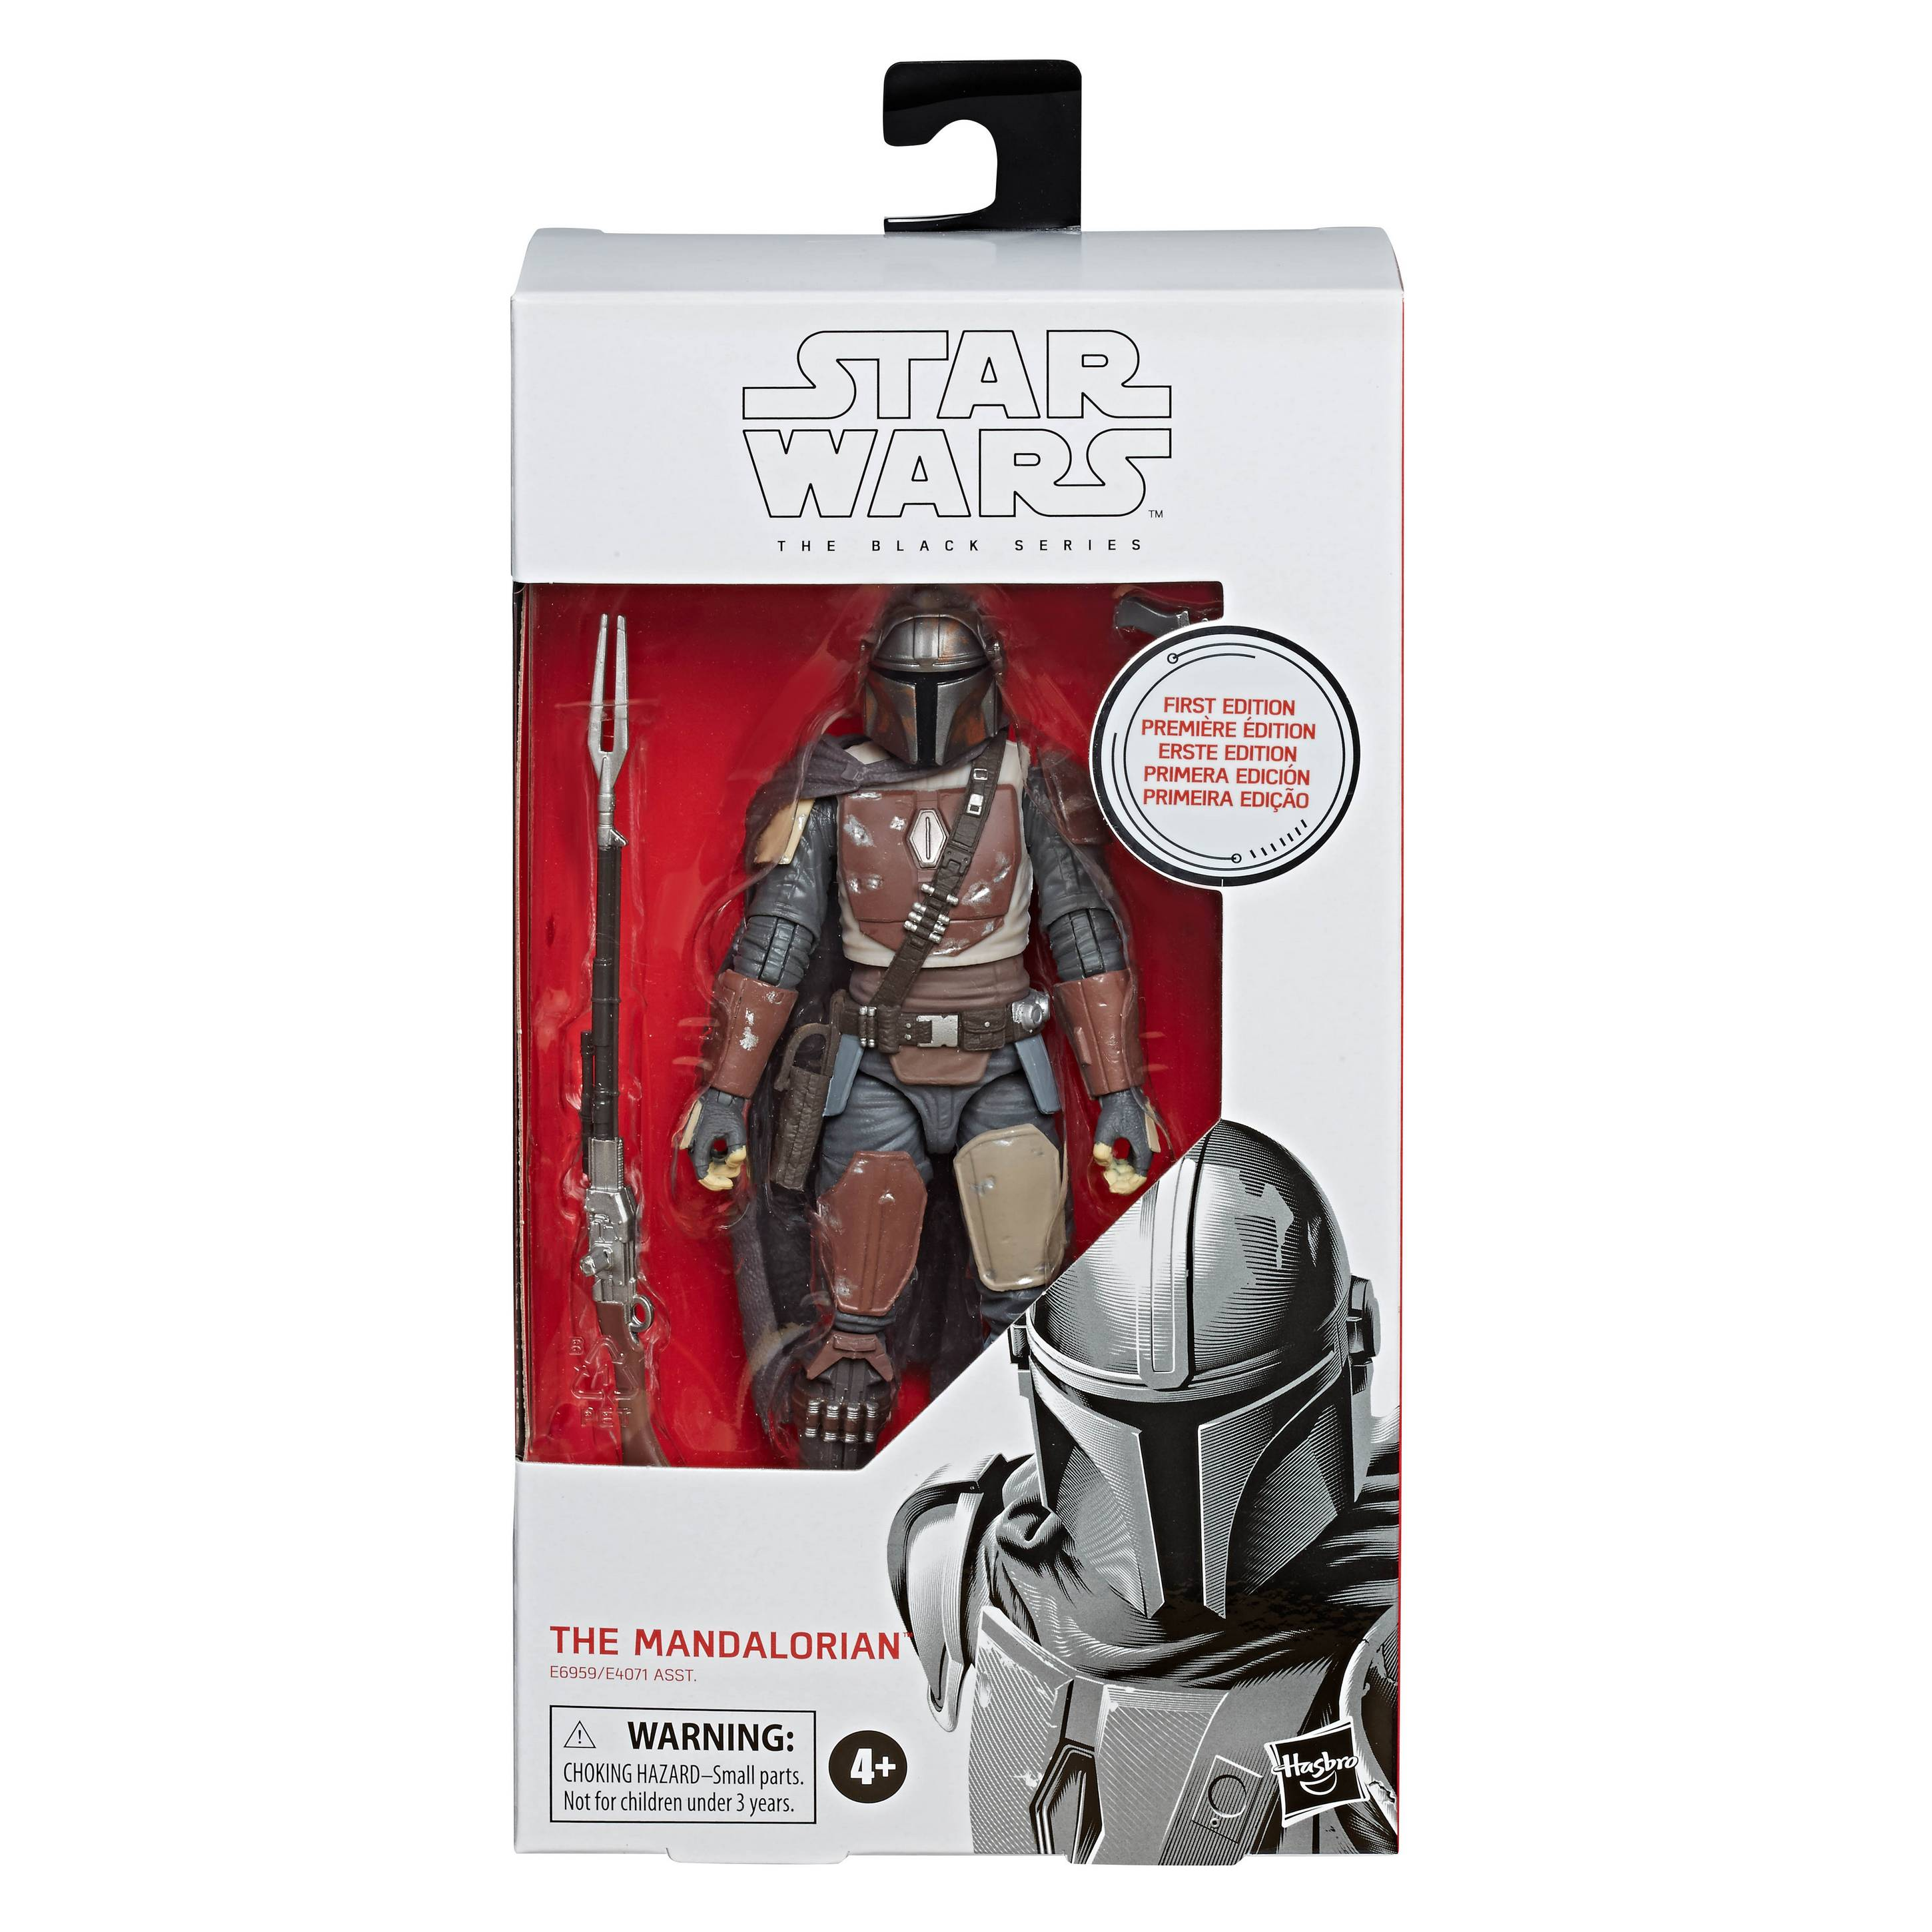 STAR-WARS-THE-BLACK-SERIES-6-INCH-THE-MANDALORIAN-Figure-First-Edition-pckging.jpg